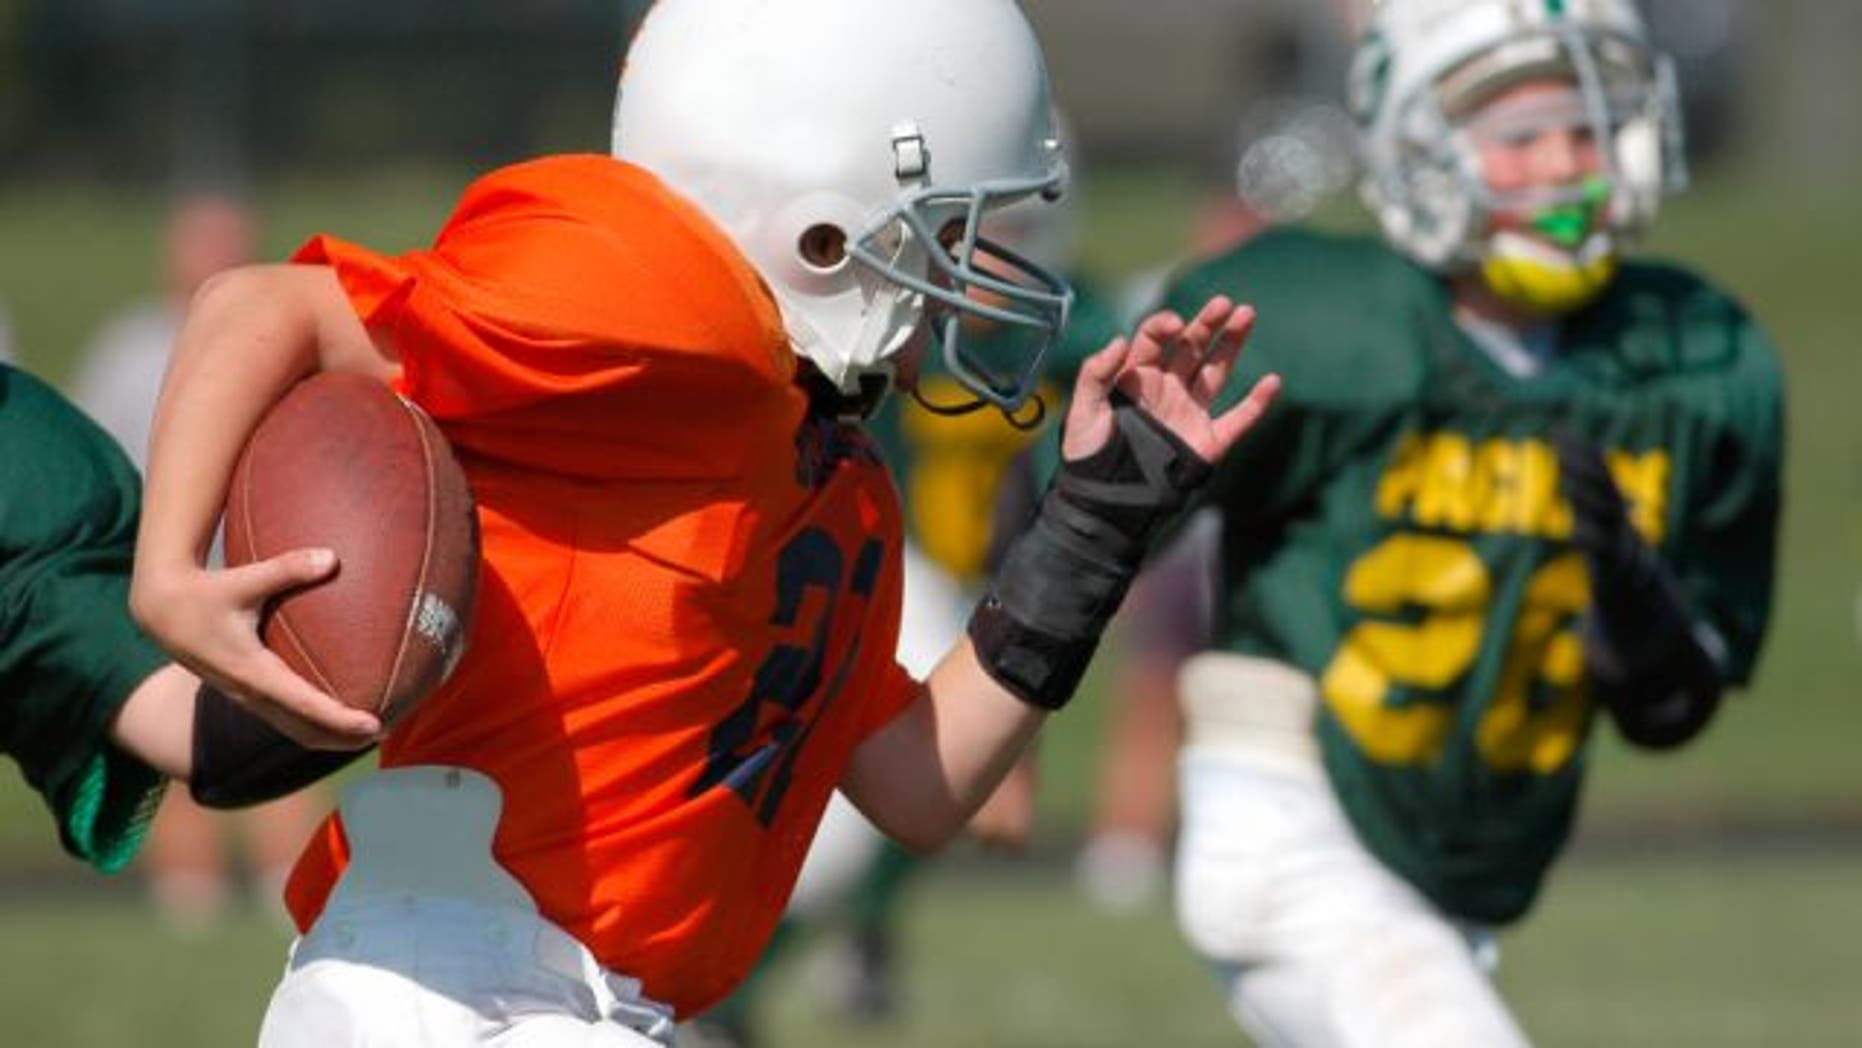 After Concussion Athletes May Need >> No Age Related Differences In Concussion Symptoms Seen In Older